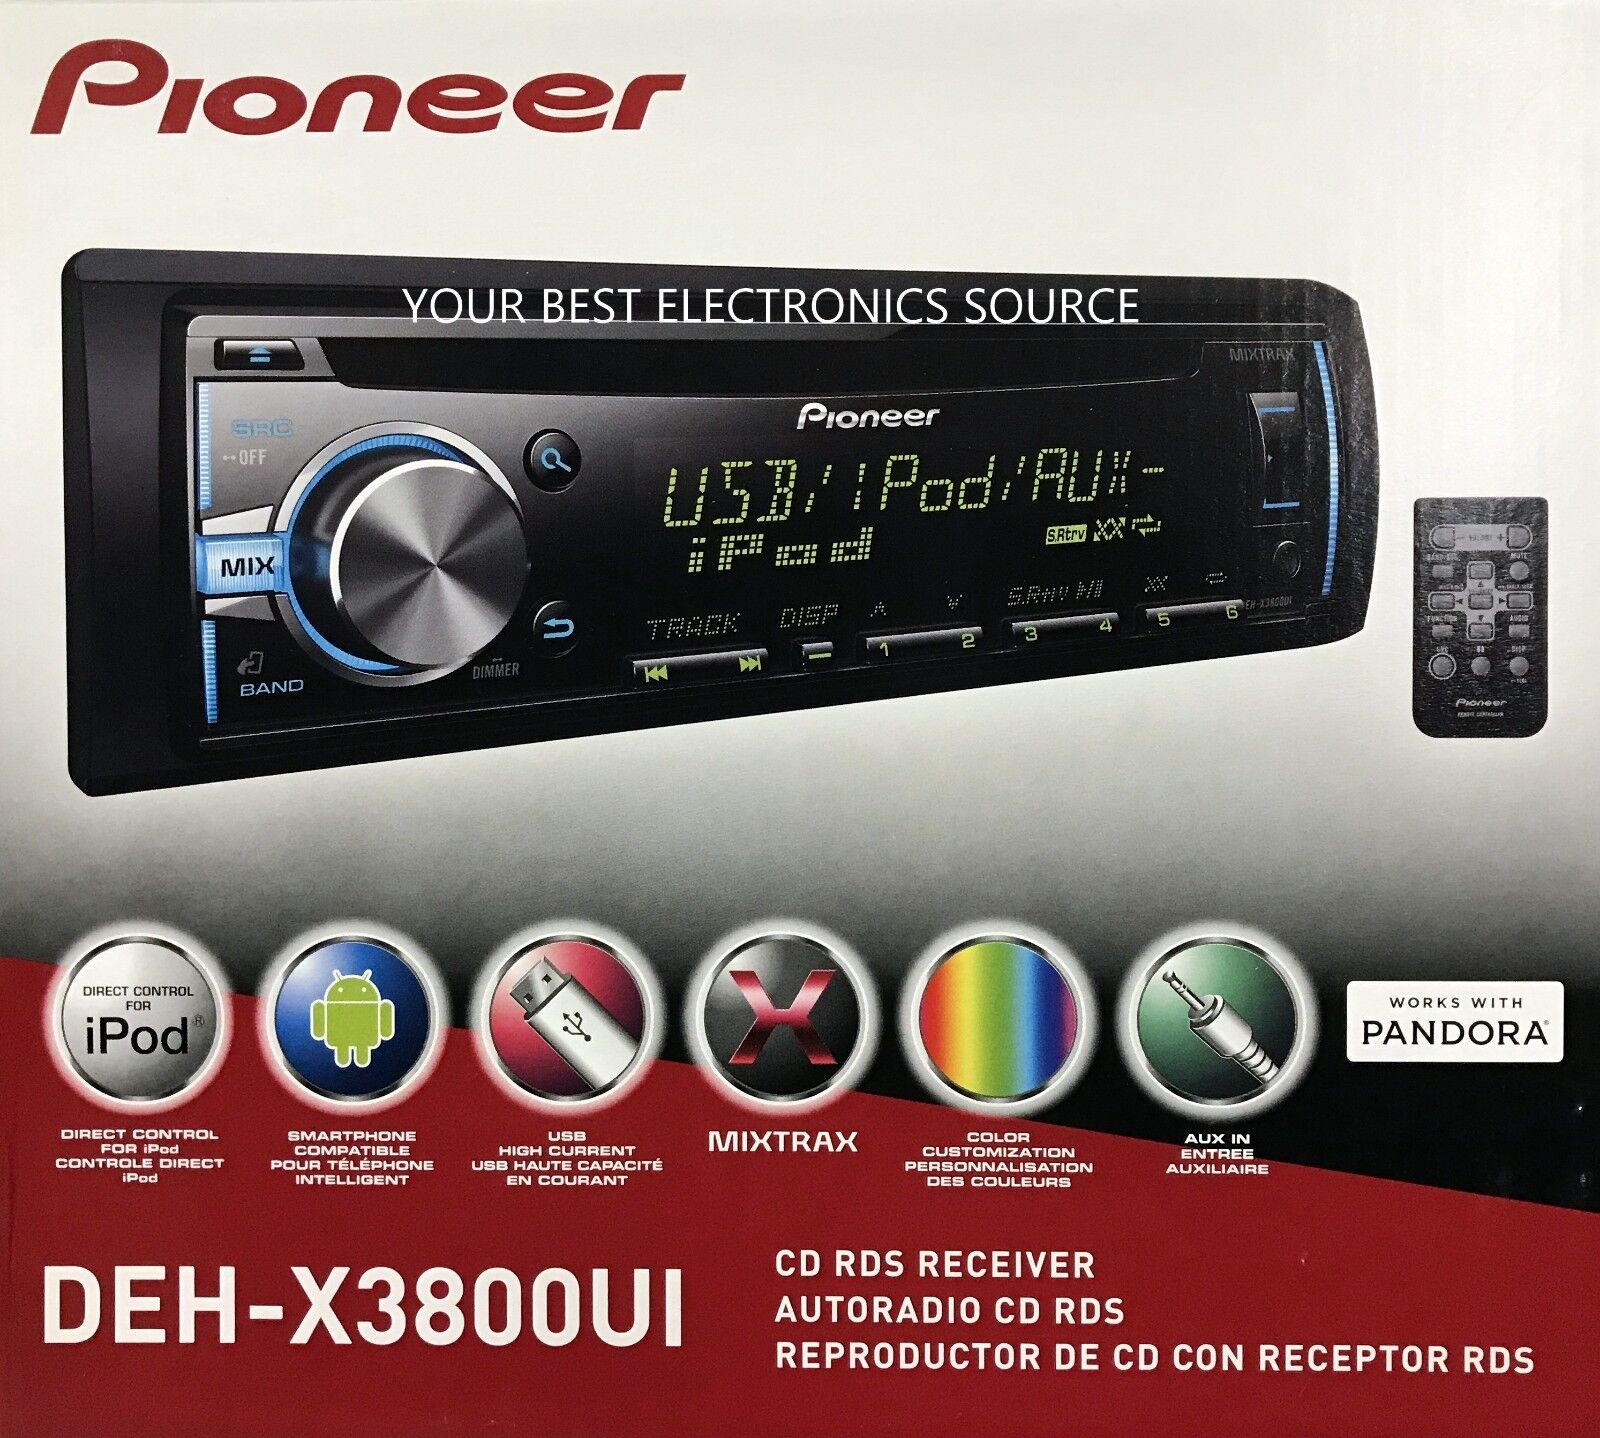 $79.90 - NEW Pioneer DEH-X3800UI CD/AM/FM Car Stereo w/ Android/iPod/iPhone Control, USB